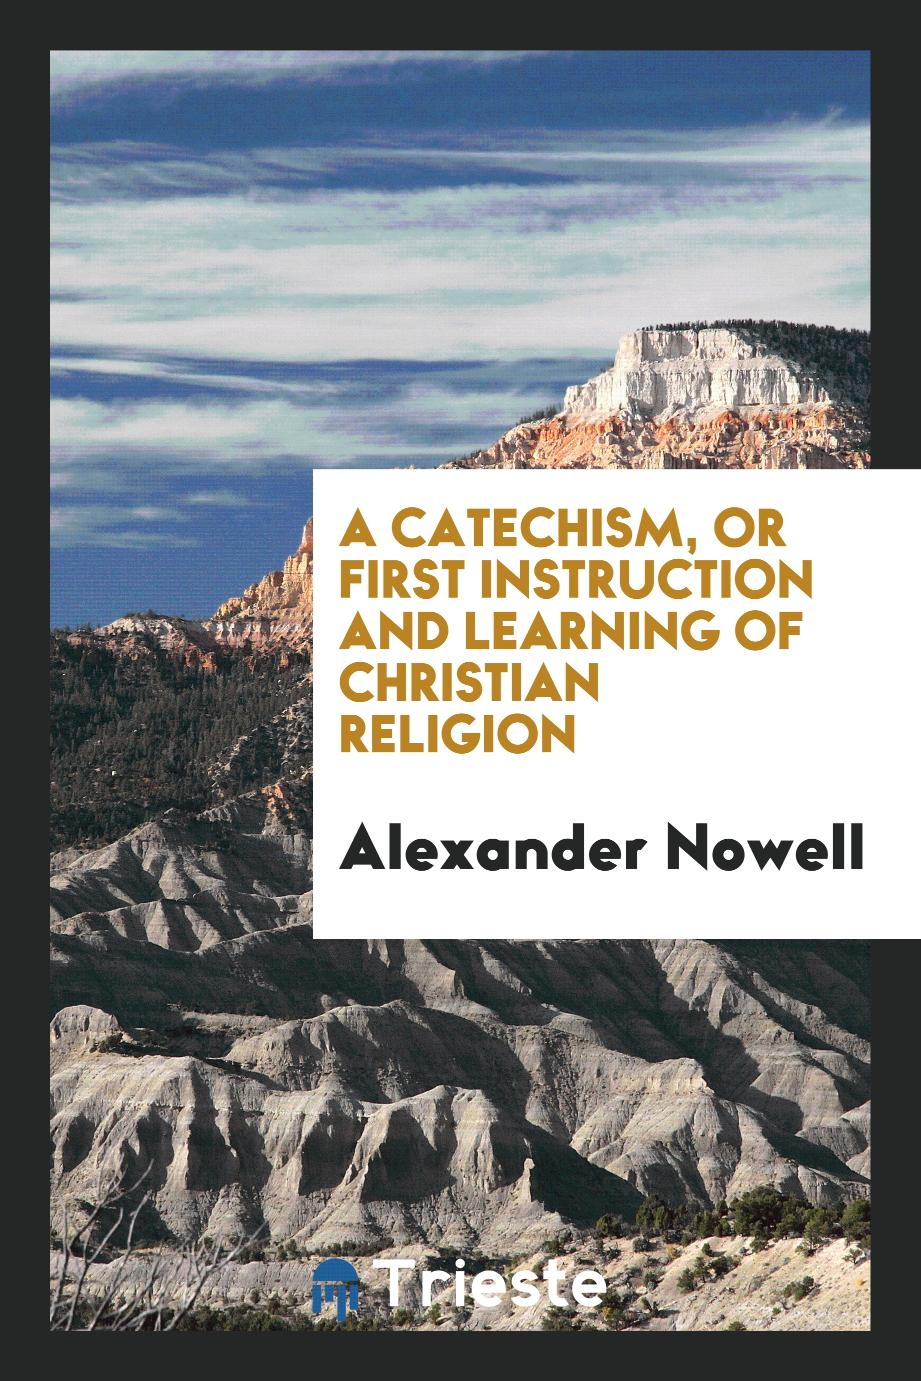 A Catechism, or First Instruction and Learning of Christian Religion